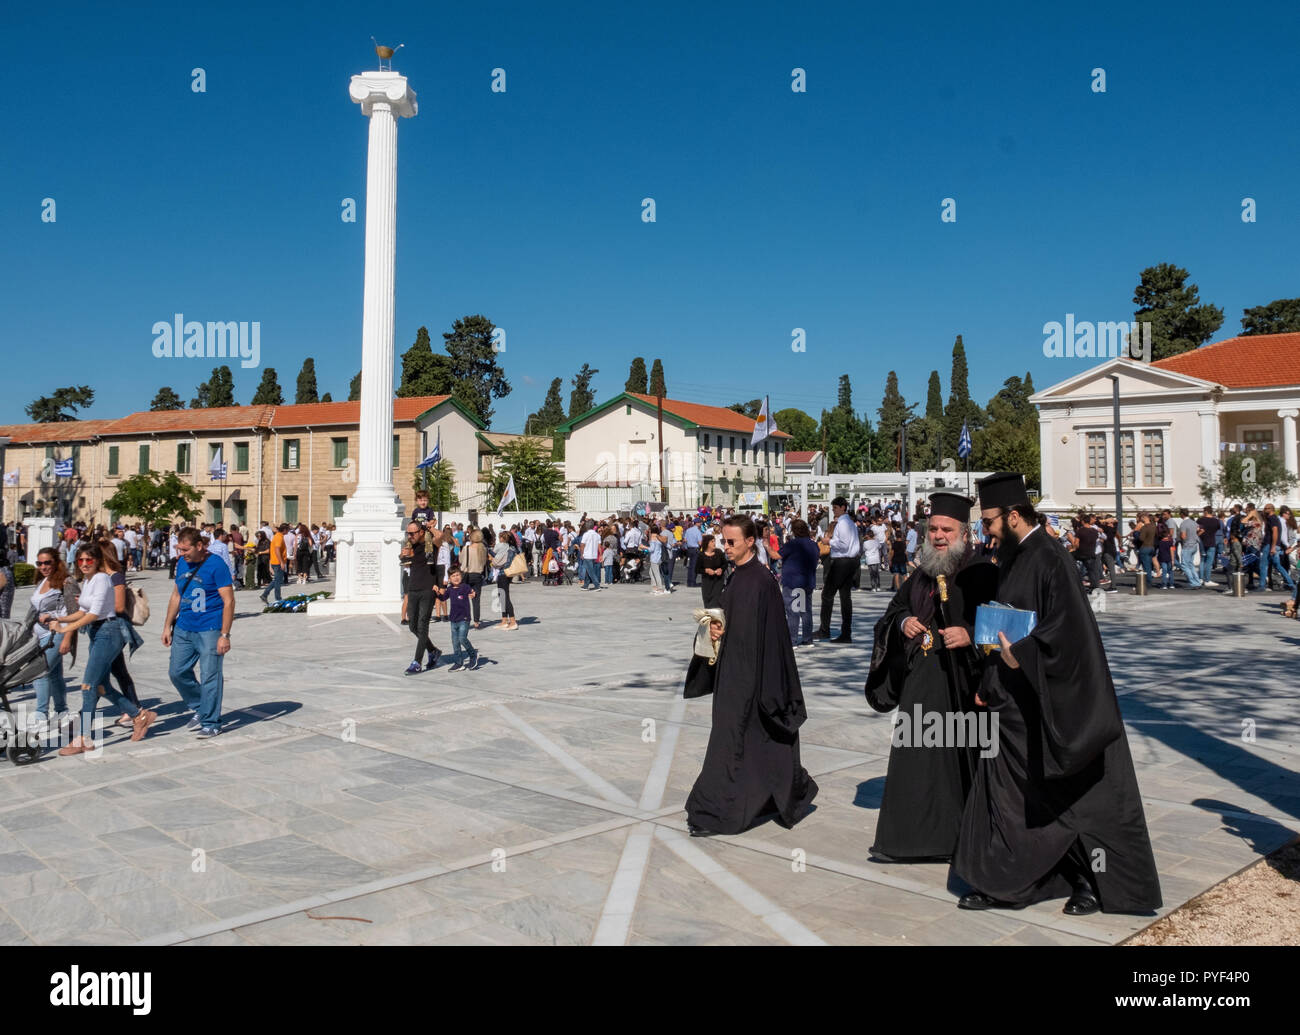 28/10/18: Cyprus: Ochi Day parade Paphos  town centre, Cyprus. - Stock Image